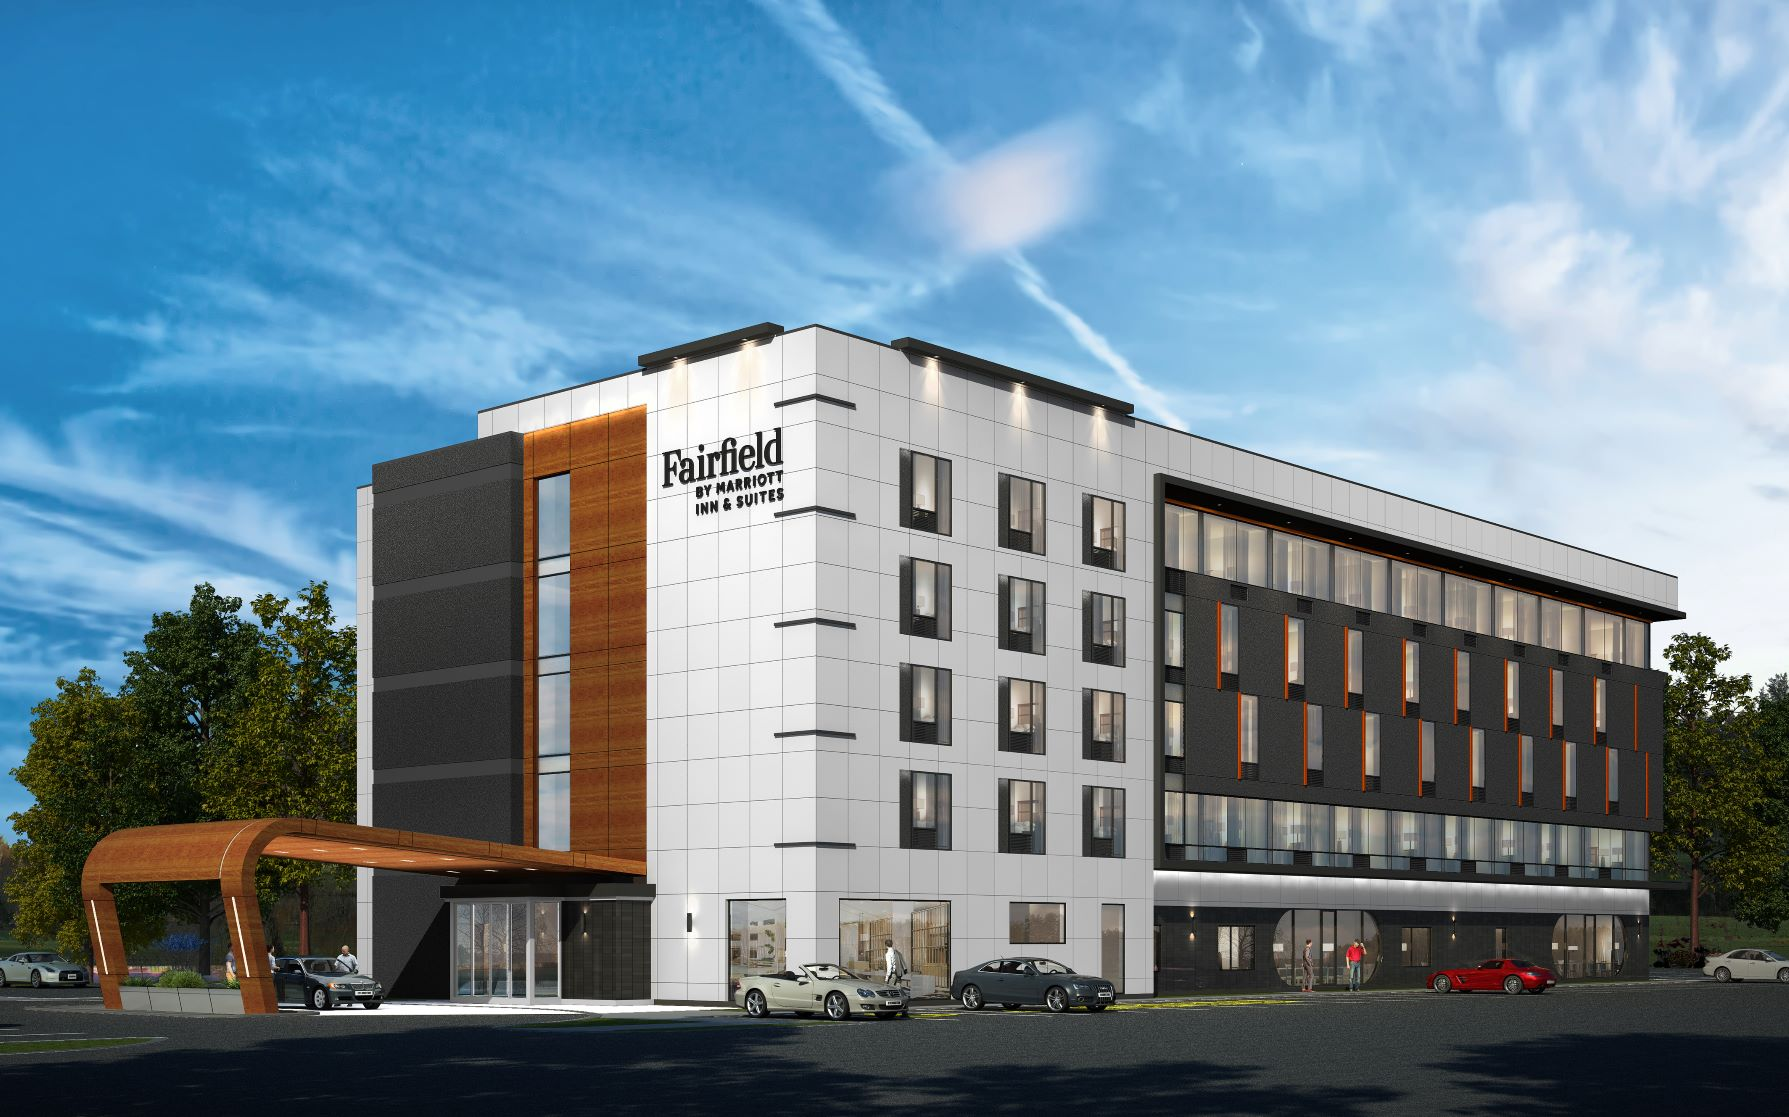 Fairfield by Marriott, Brantford ON